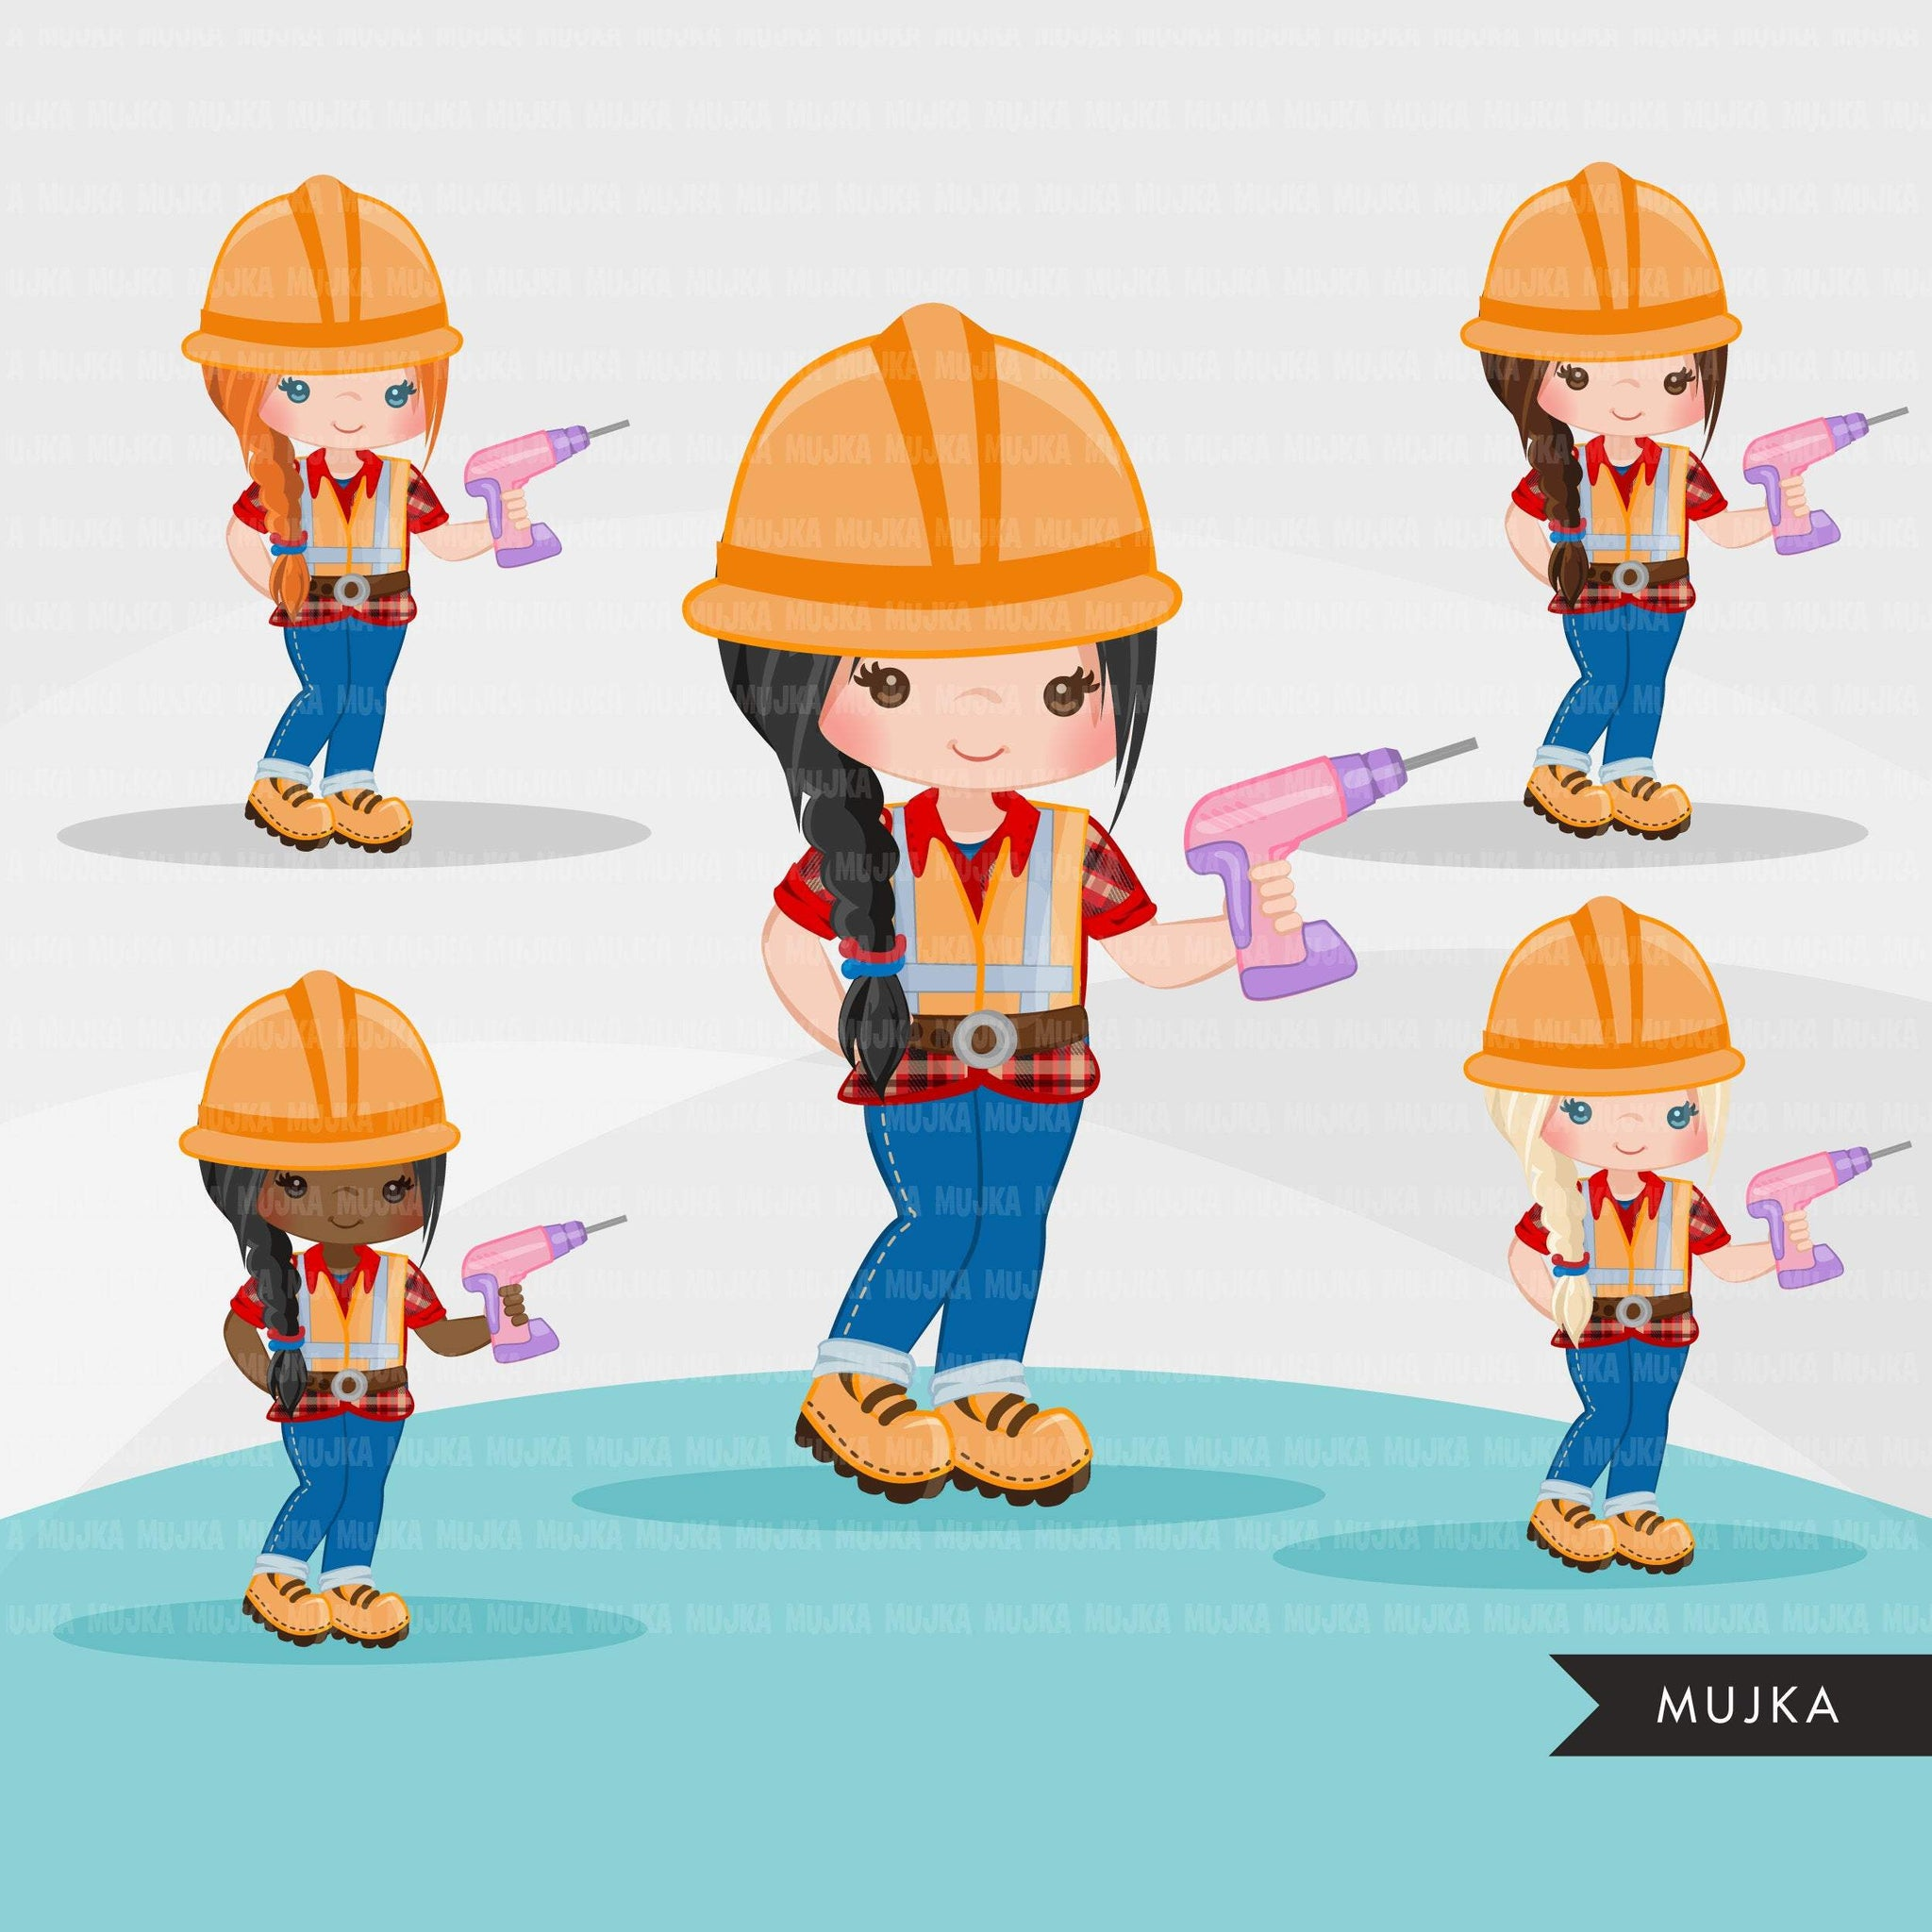 Construction Clipart, Little girl contractor, hard hat, dump truck, crane, excavator, bulldozer vehicle, tools, drill, safety jacket